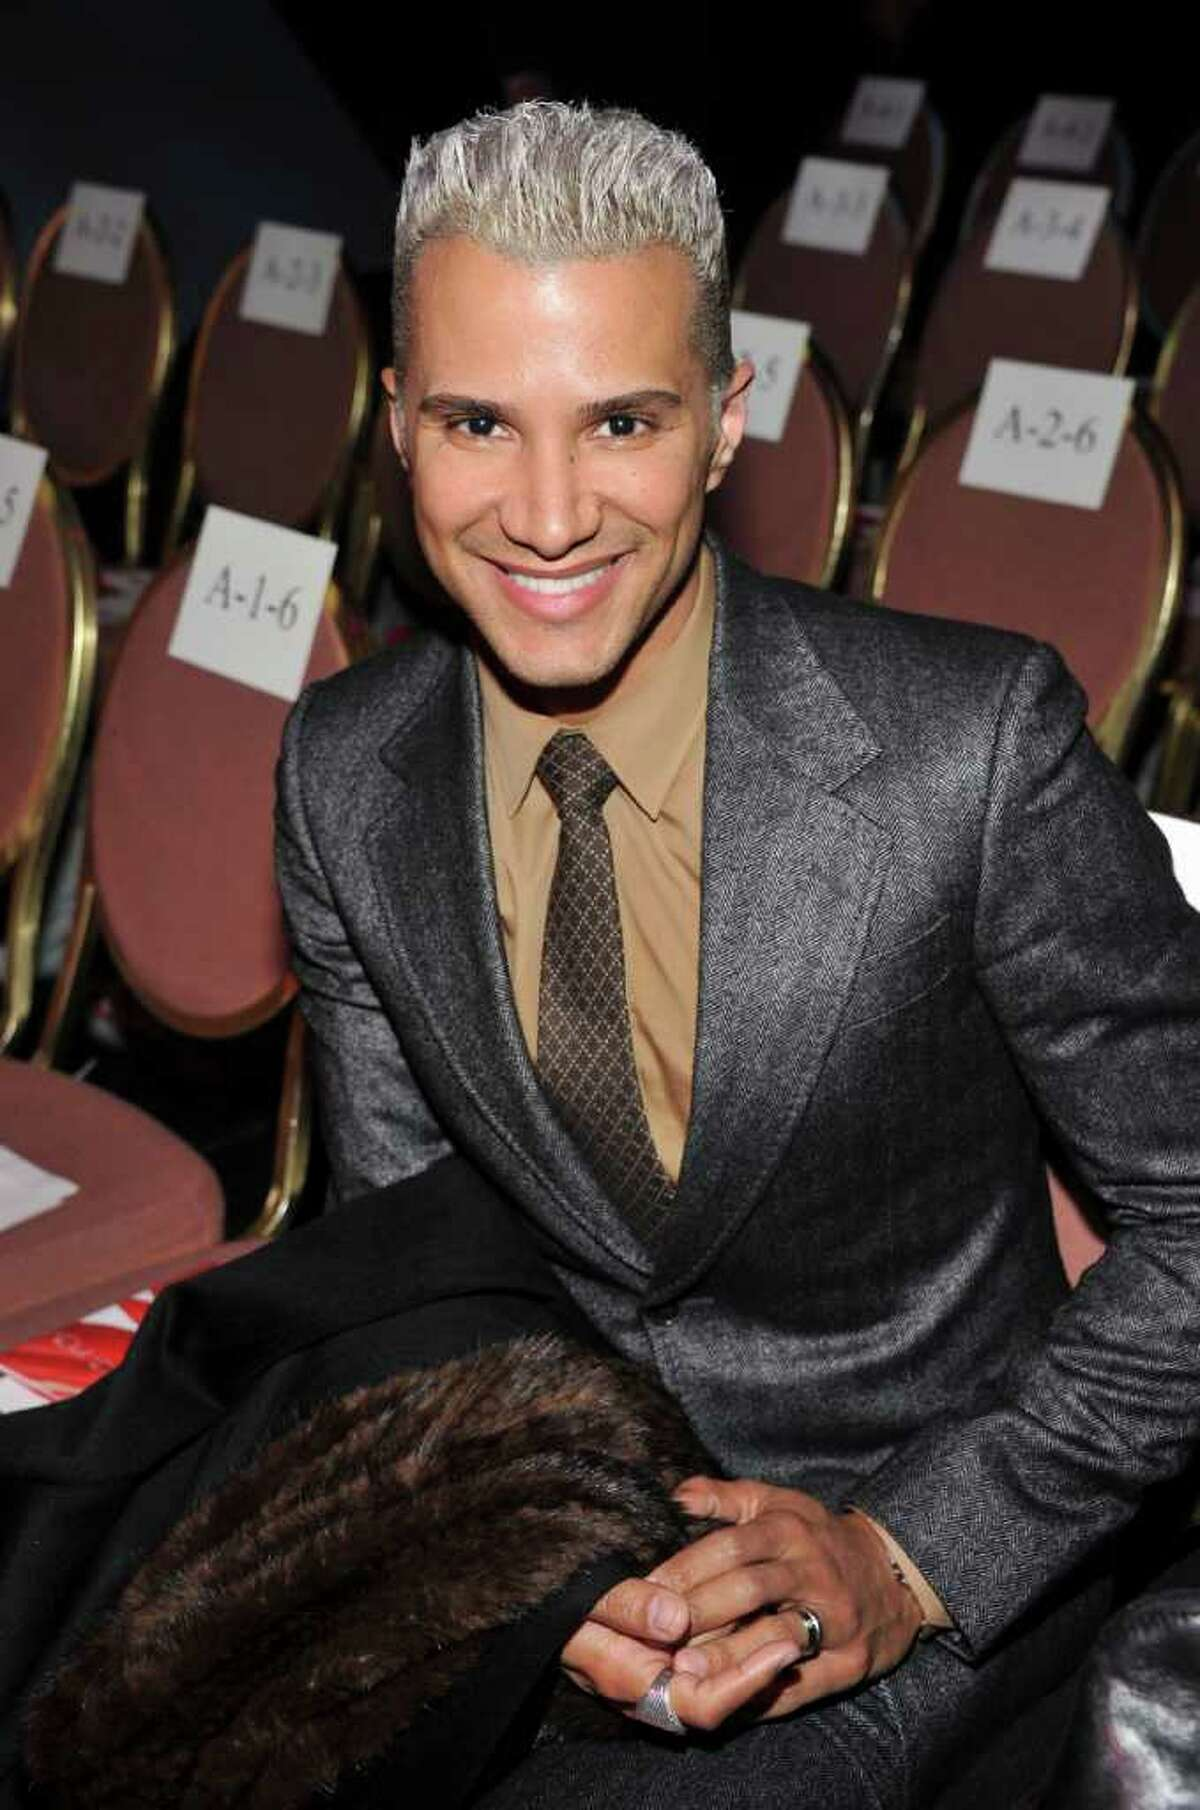 TV personality Jay Manuel, pictured attending the Heart Truth's Red Dress Collection 2012 Fashion Show in New York City Feb. 8, was spotted having dinner at Napa & Co in Stamford last weekend. (Photo by Theo Wargo/Getty Images for Heart Truth)